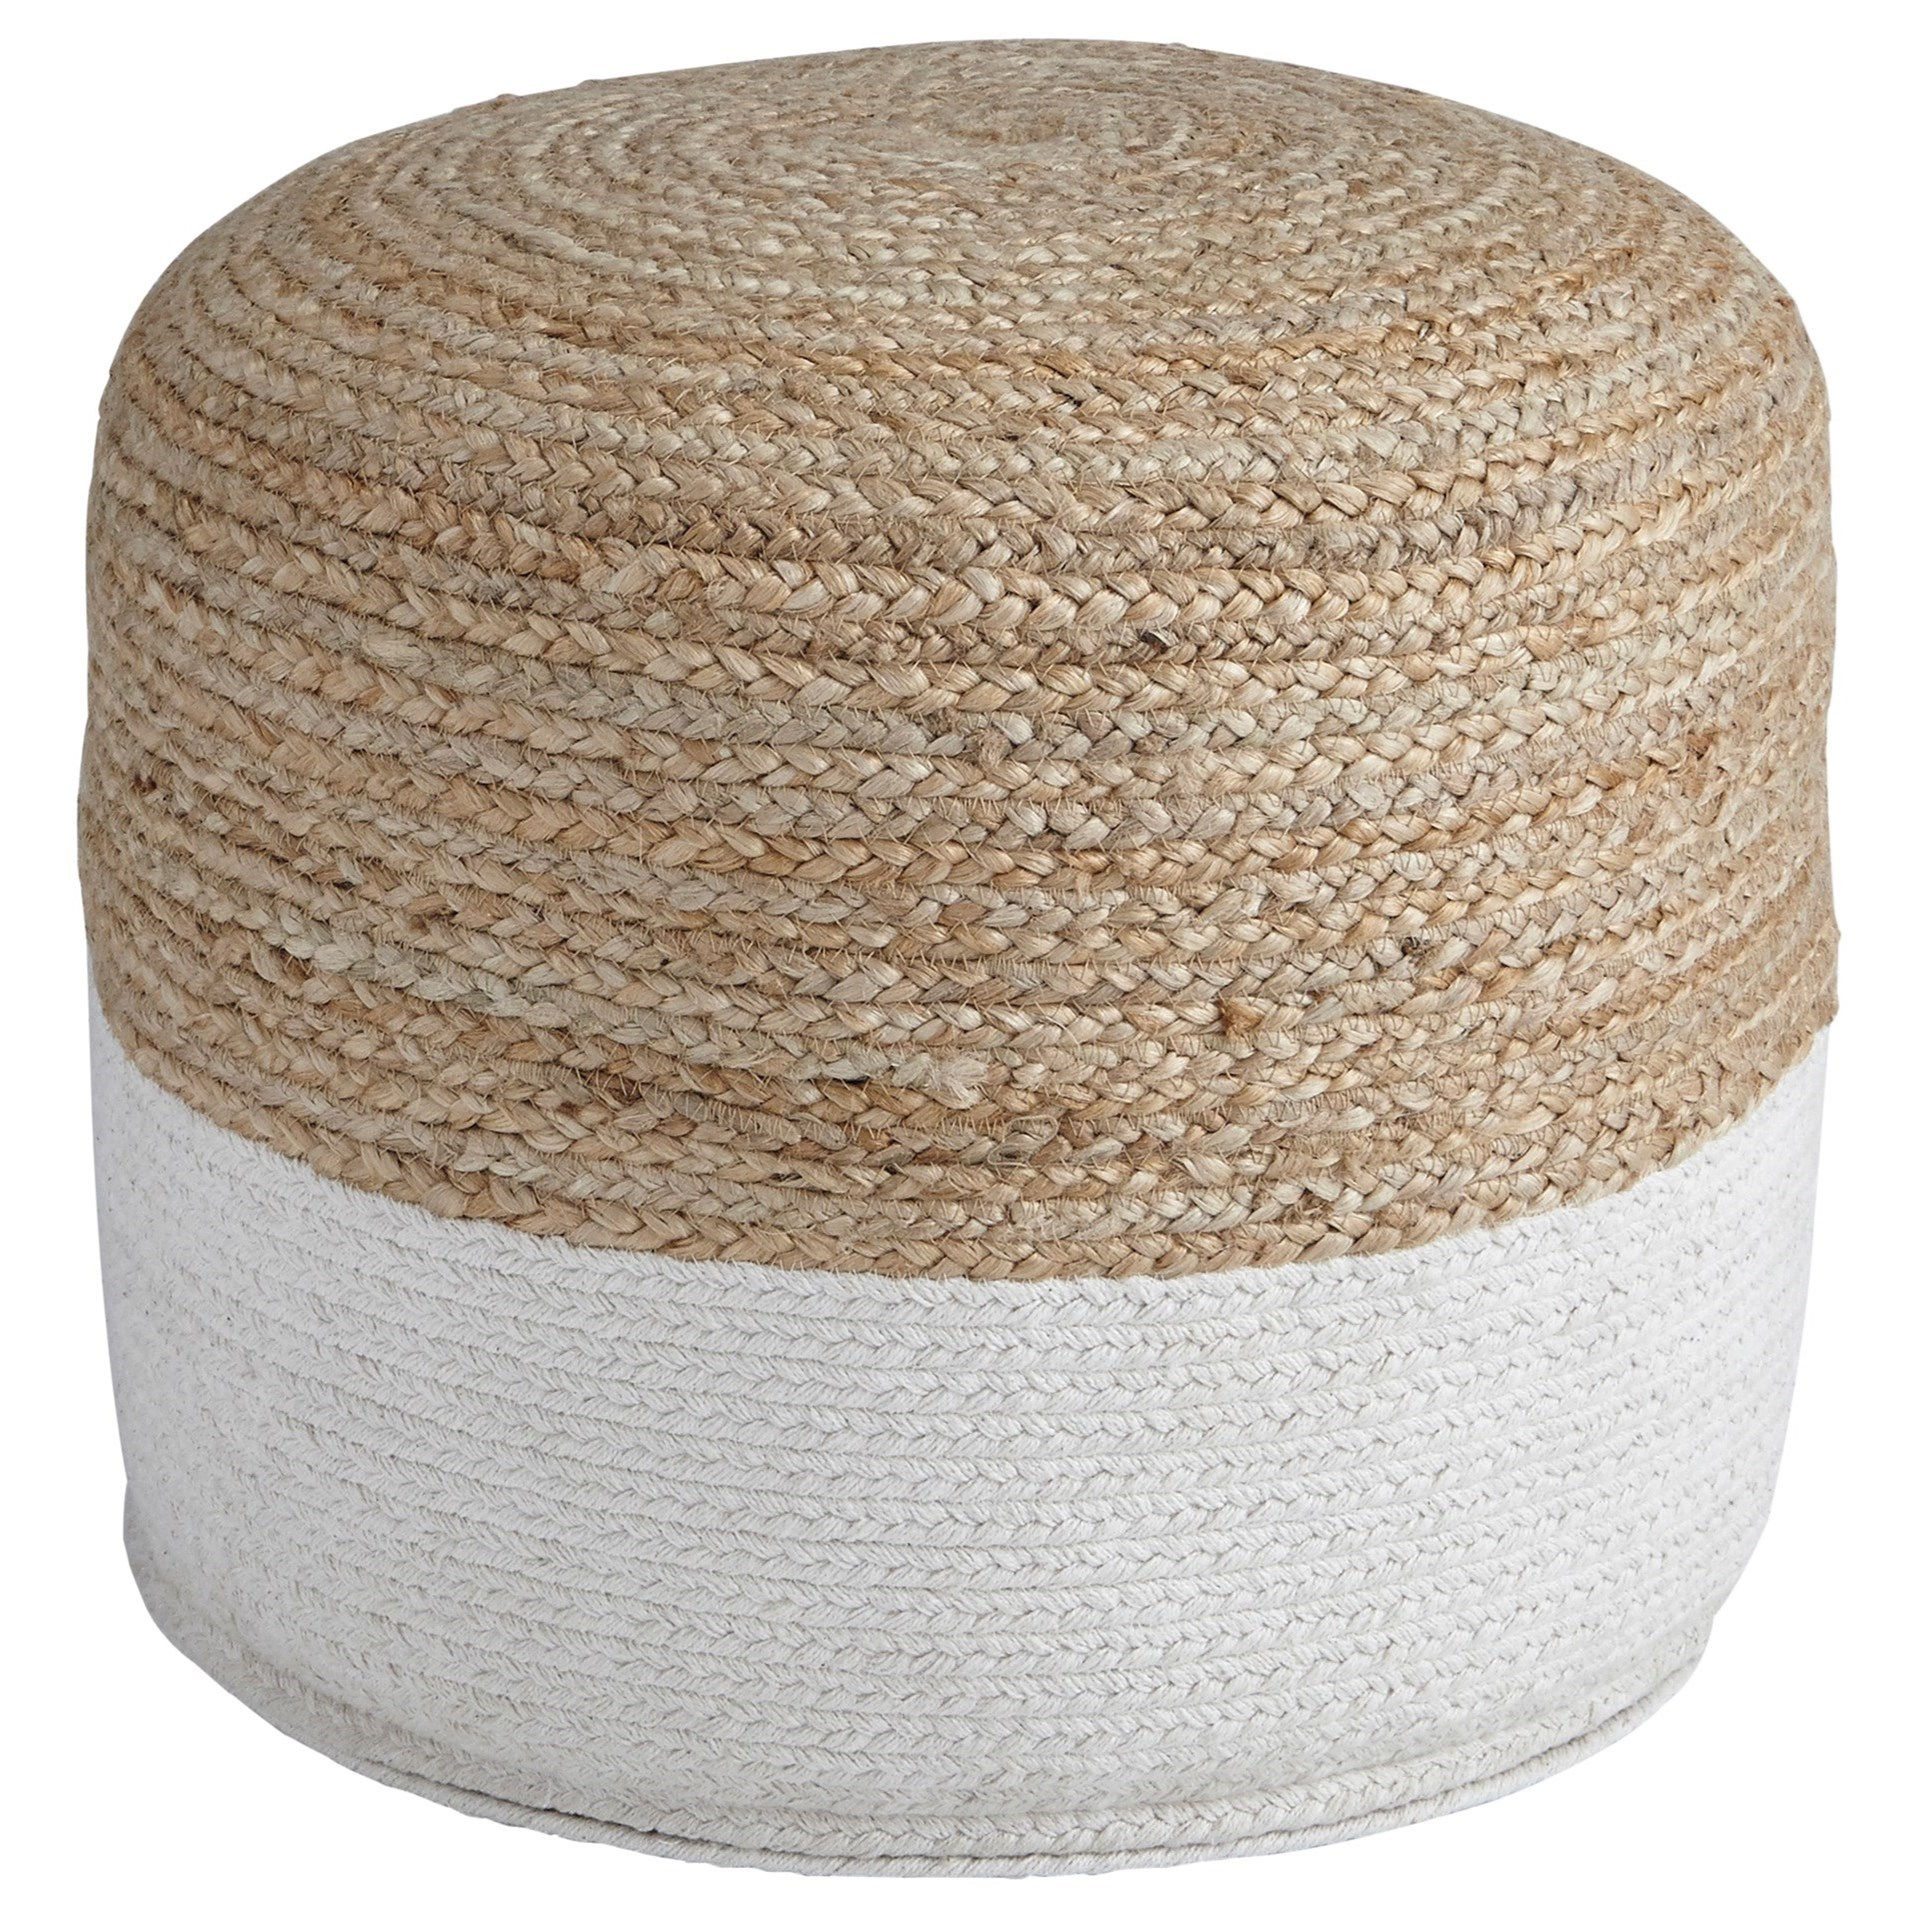 Poufs Sweed Valley - Natural/White Pouf by Signature Design by Ashley at Beds N Stuff